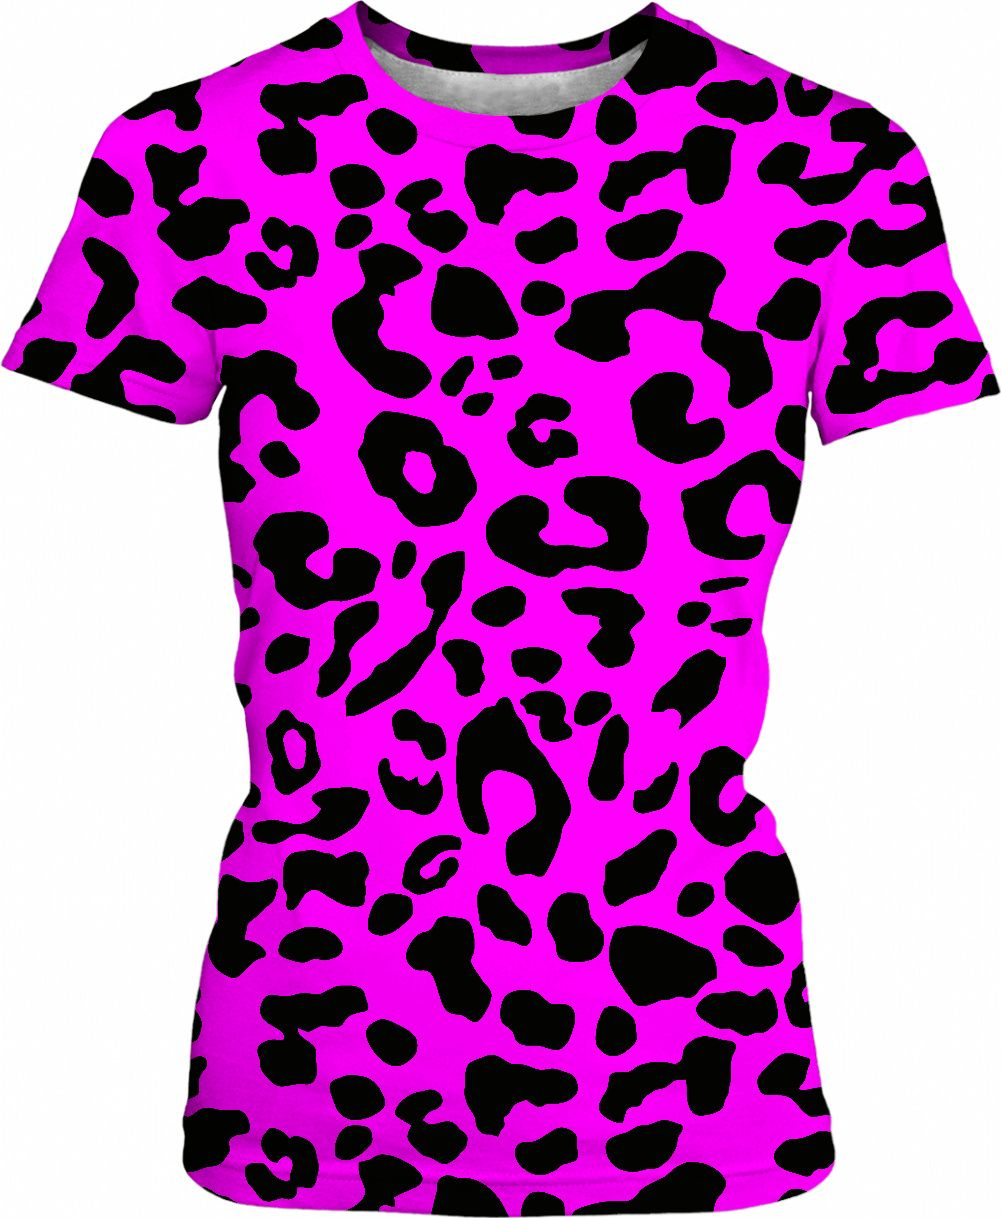 b943edfcaff7 Killer pink leopard t-shirt, womens fit - black asymetric spots pattern at  saturated